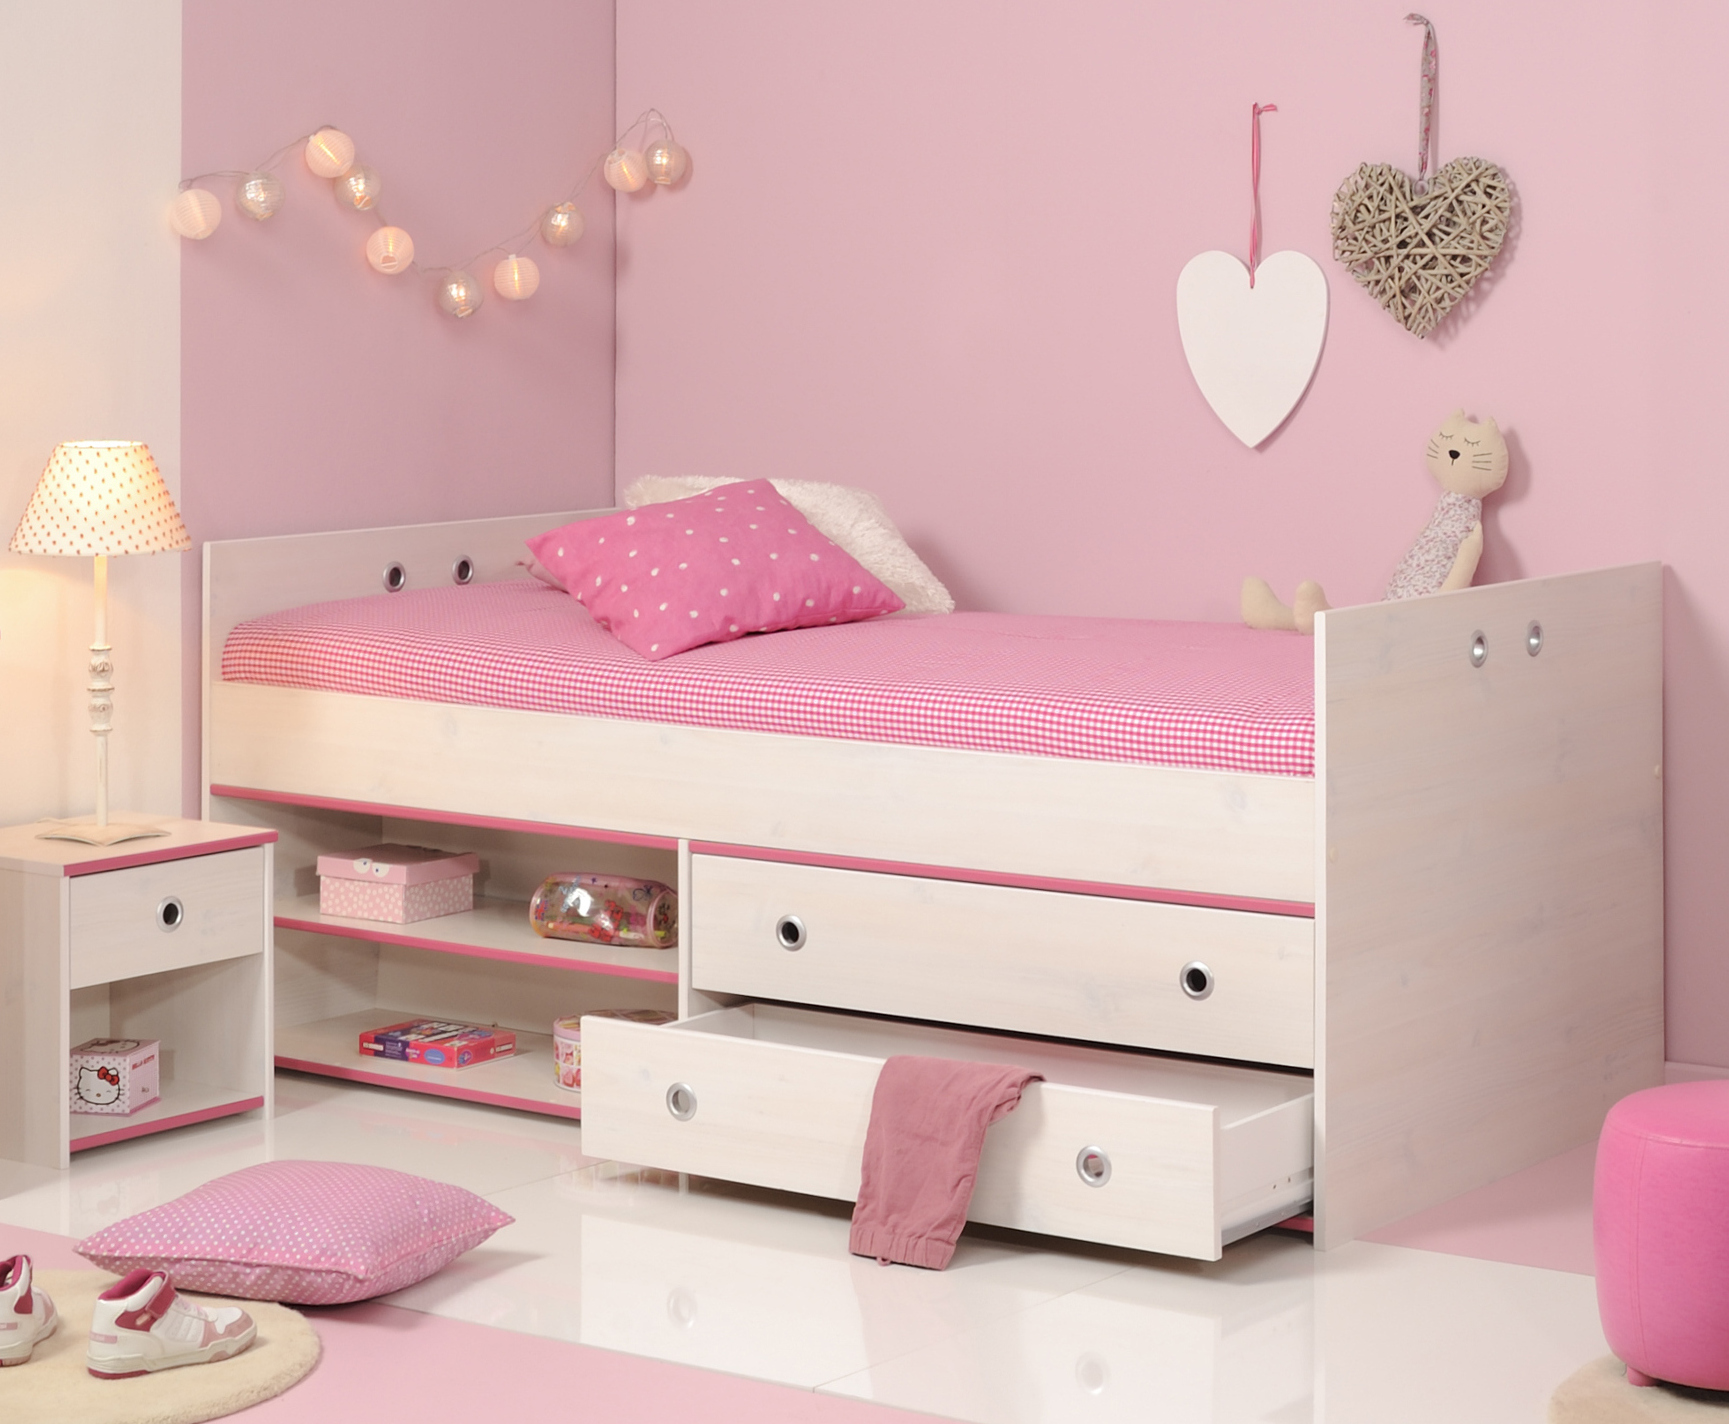 schlafzimmer 2 tlg inkl 90x200 stauraumbett smoozy 24b von parisot kiefer weiss pink. Black Bedroom Furniture Sets. Home Design Ideas